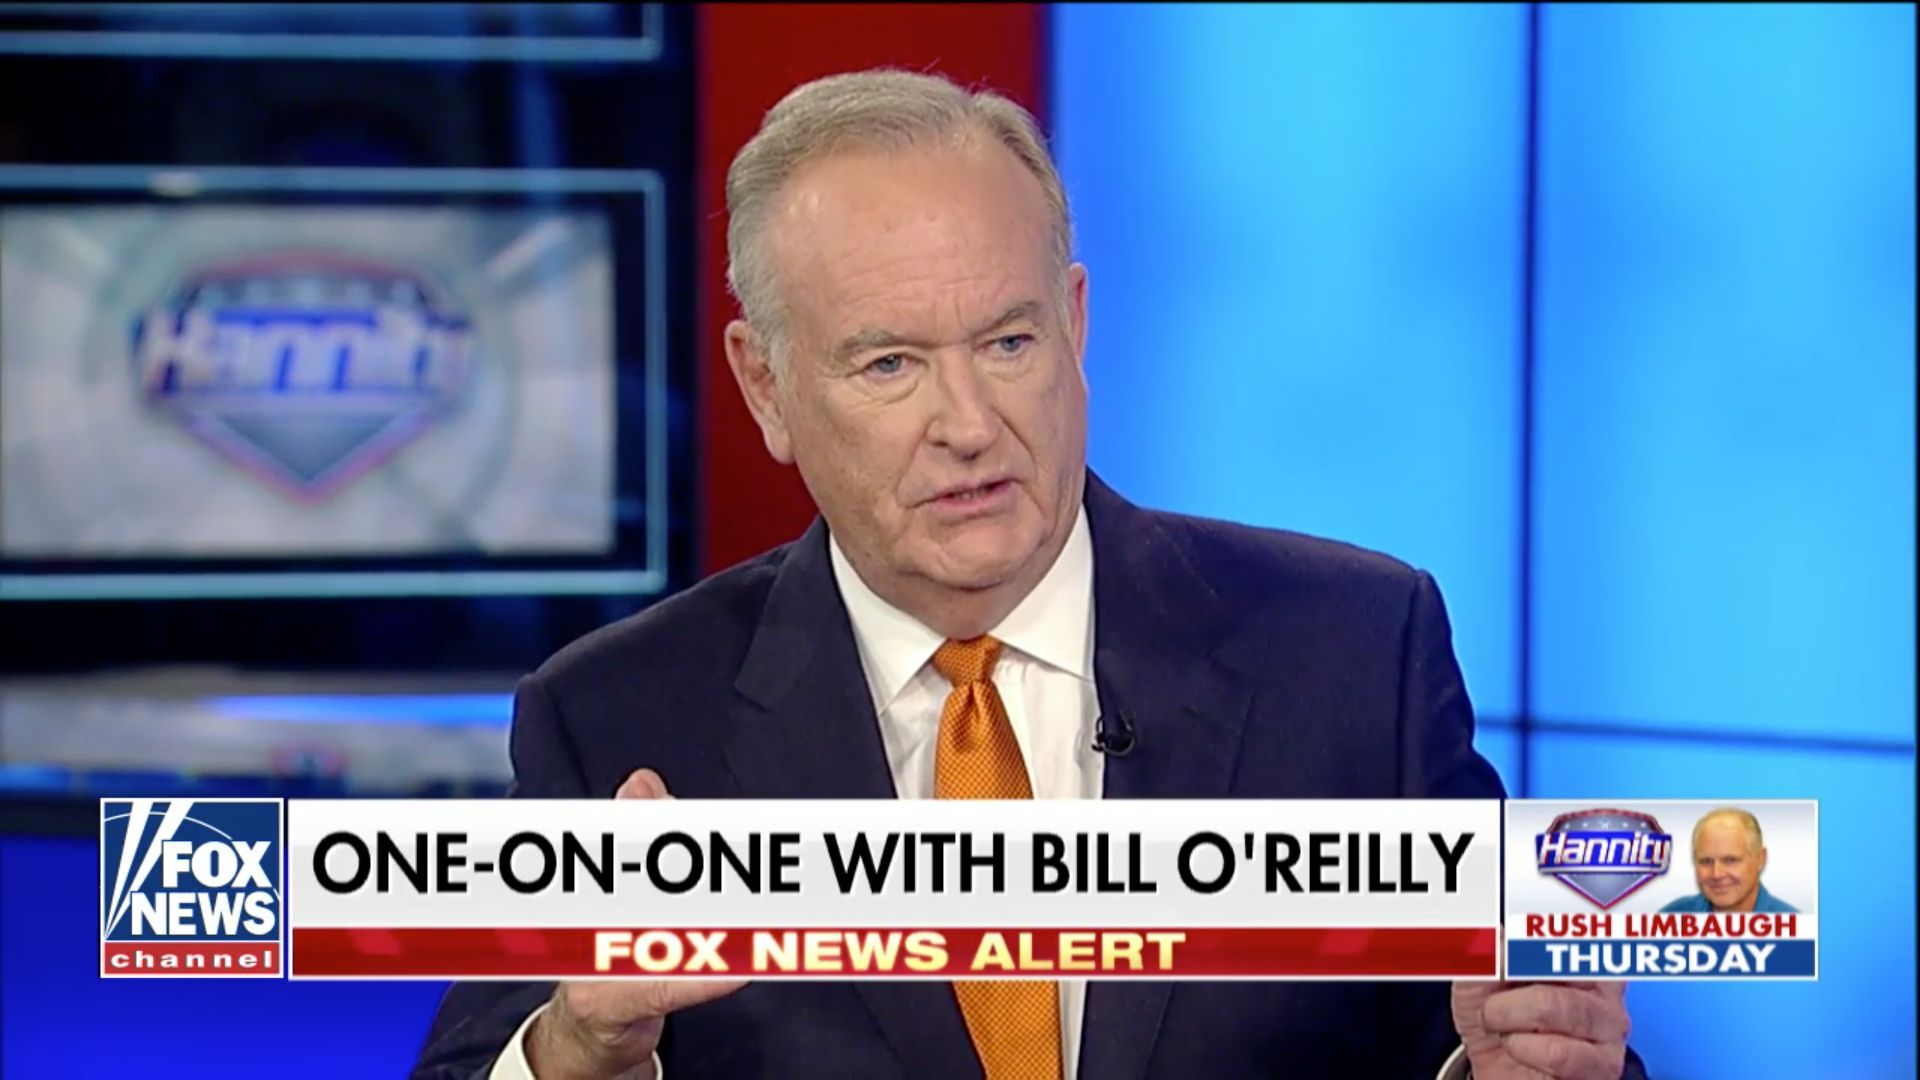 Bill O'Reilly dropped by another talent agency